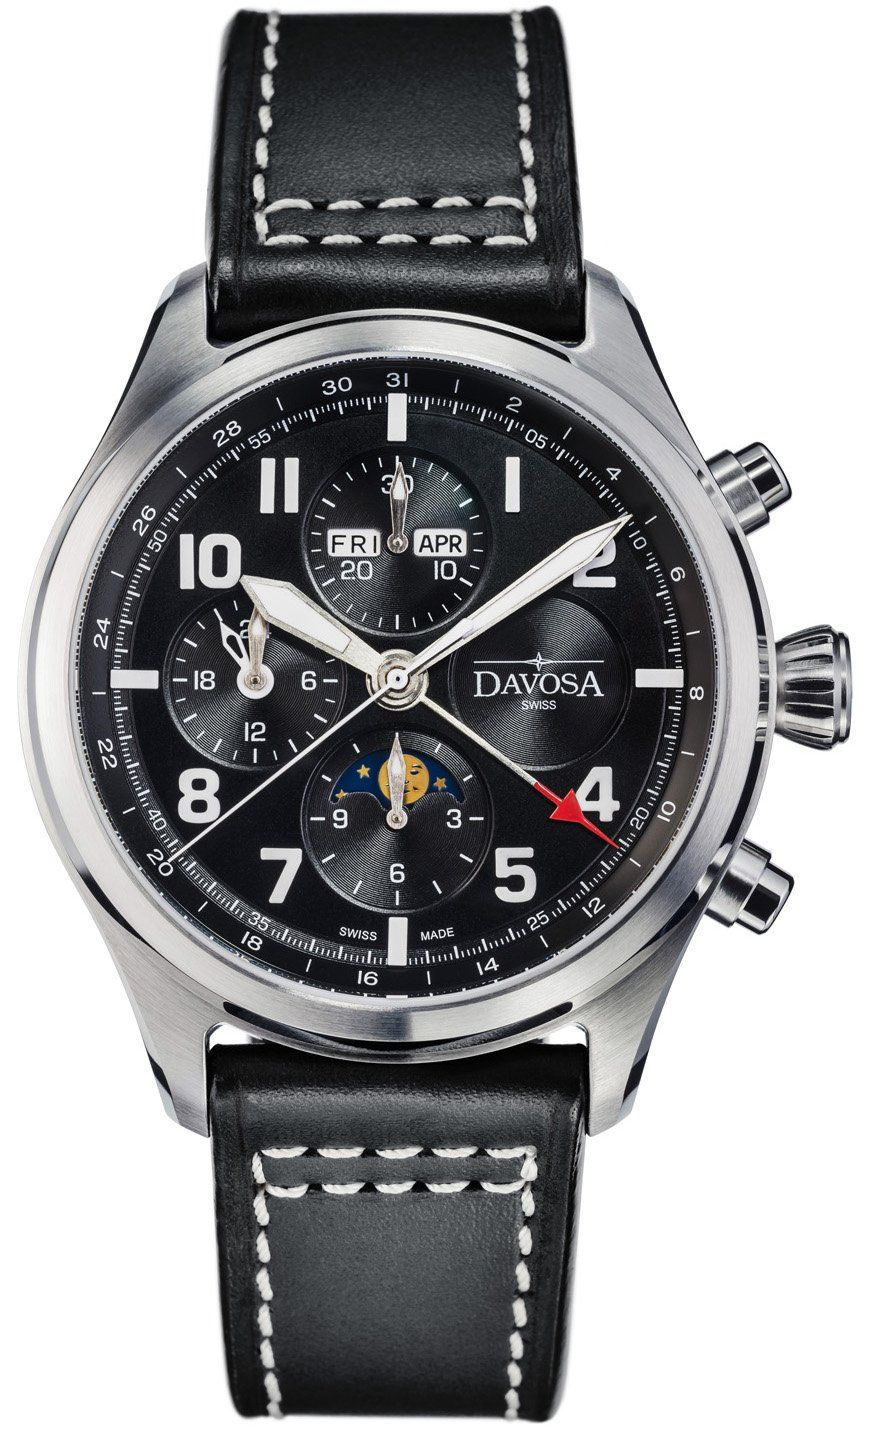 Davosa watch newton pilot moonphase chrongraph limited